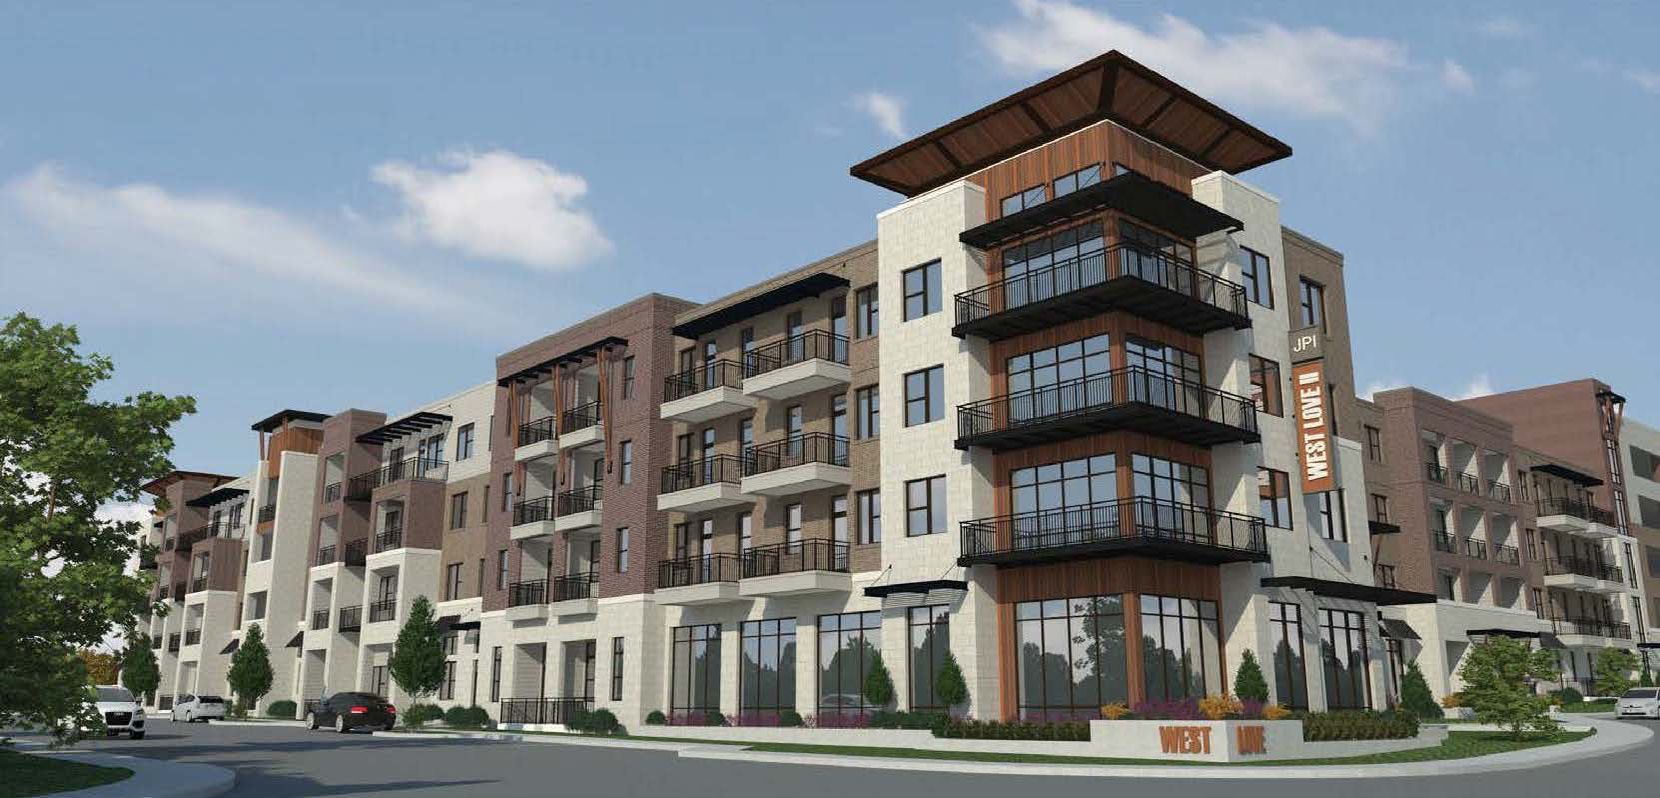 Irving-based JPI is building 354 more apartments in the West Love development near Dallas' Love Field.